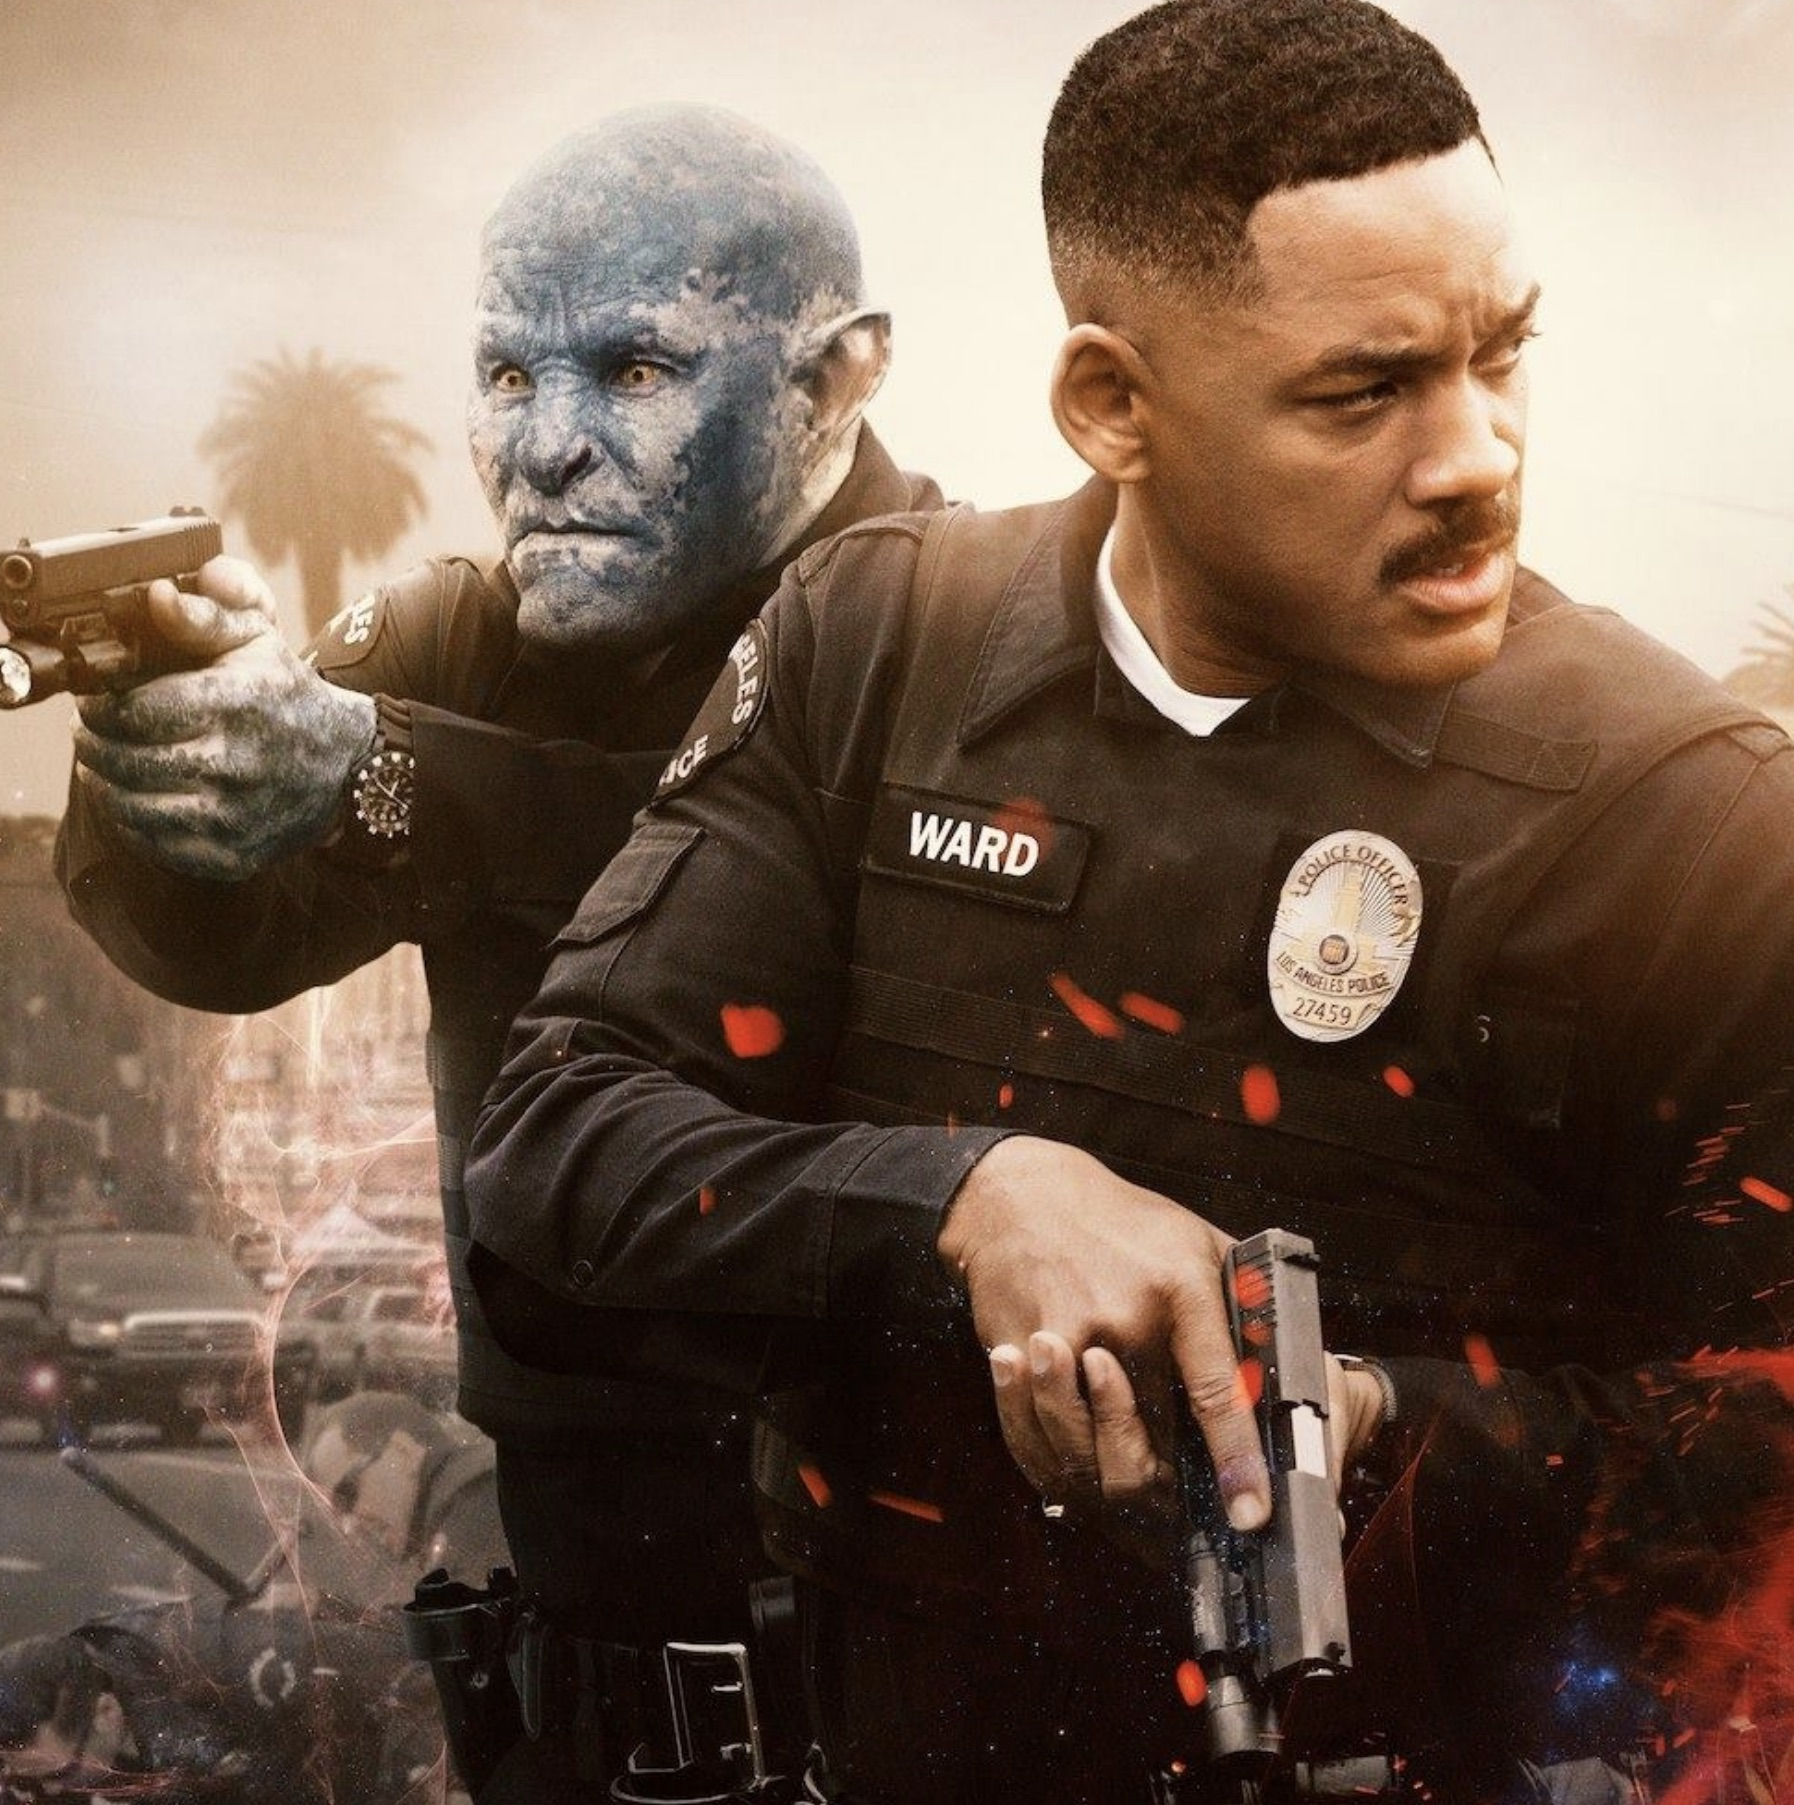 Will smith dec 2017 netflix film